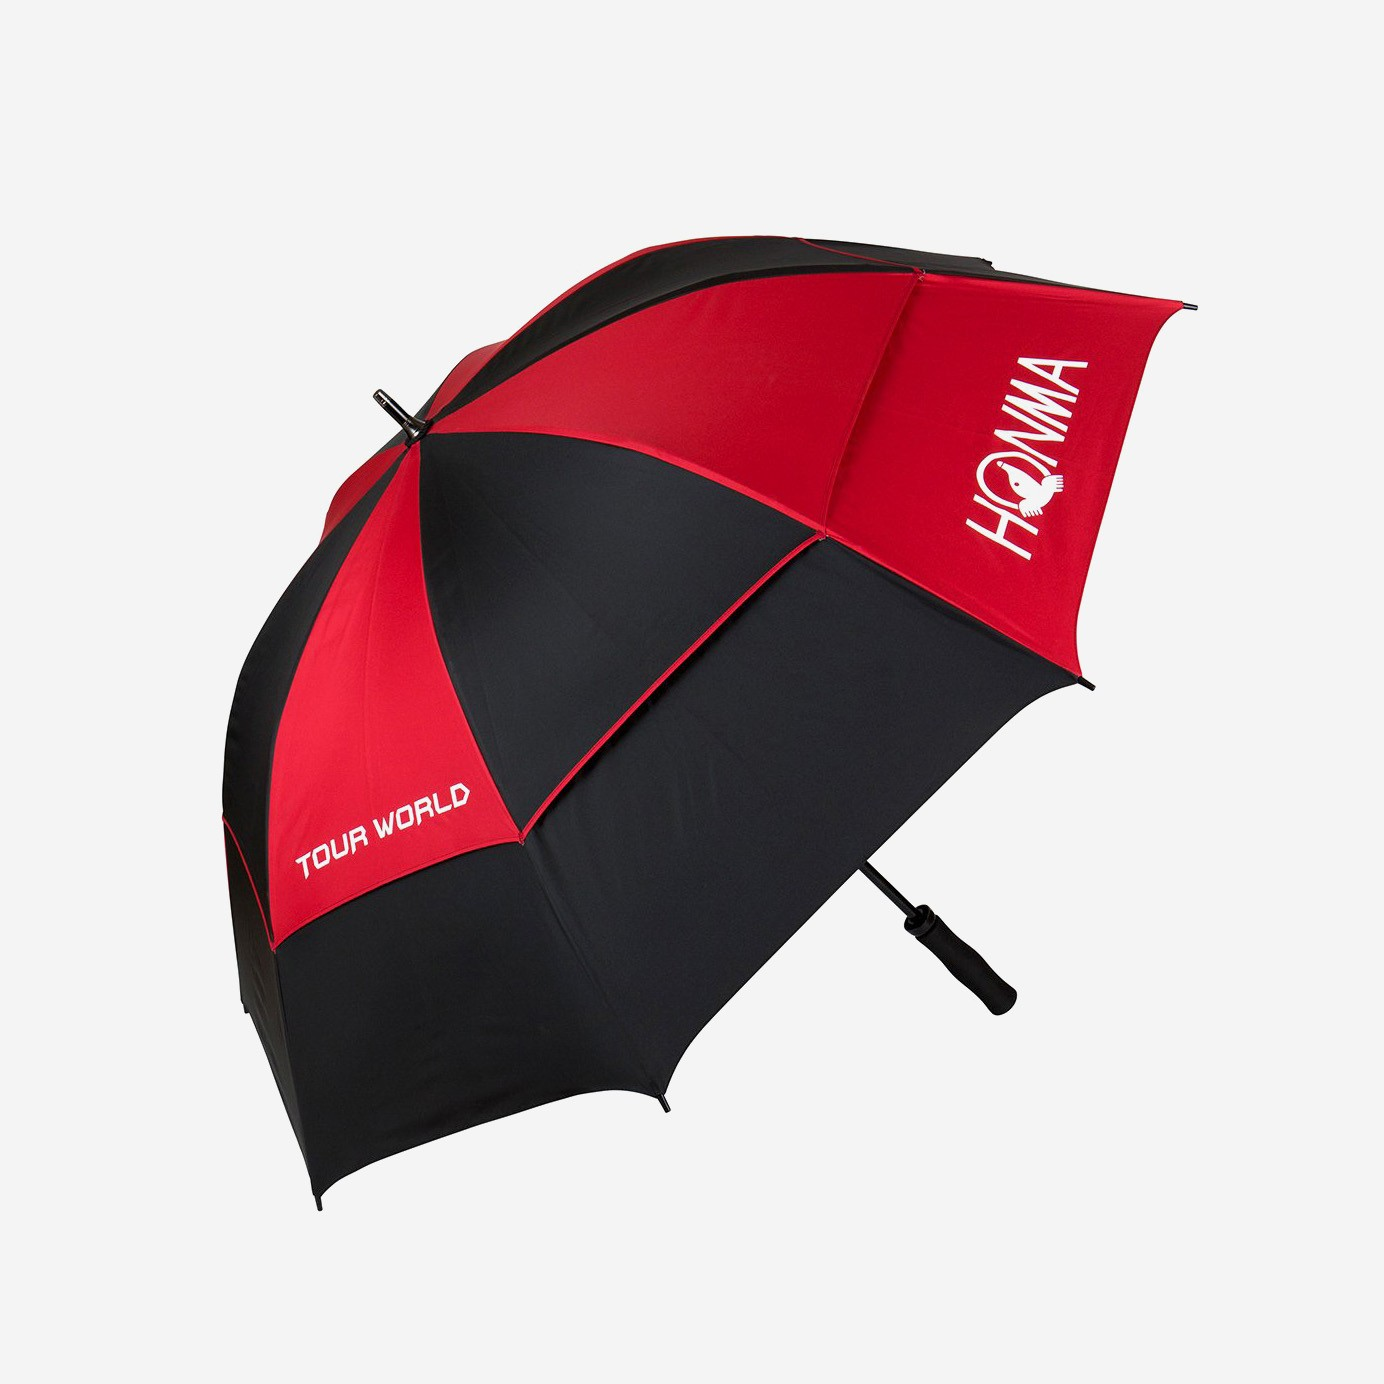 https://www.justinrose.com/wp-content/uploads/2019/07/Honma-Umbrella.jpg